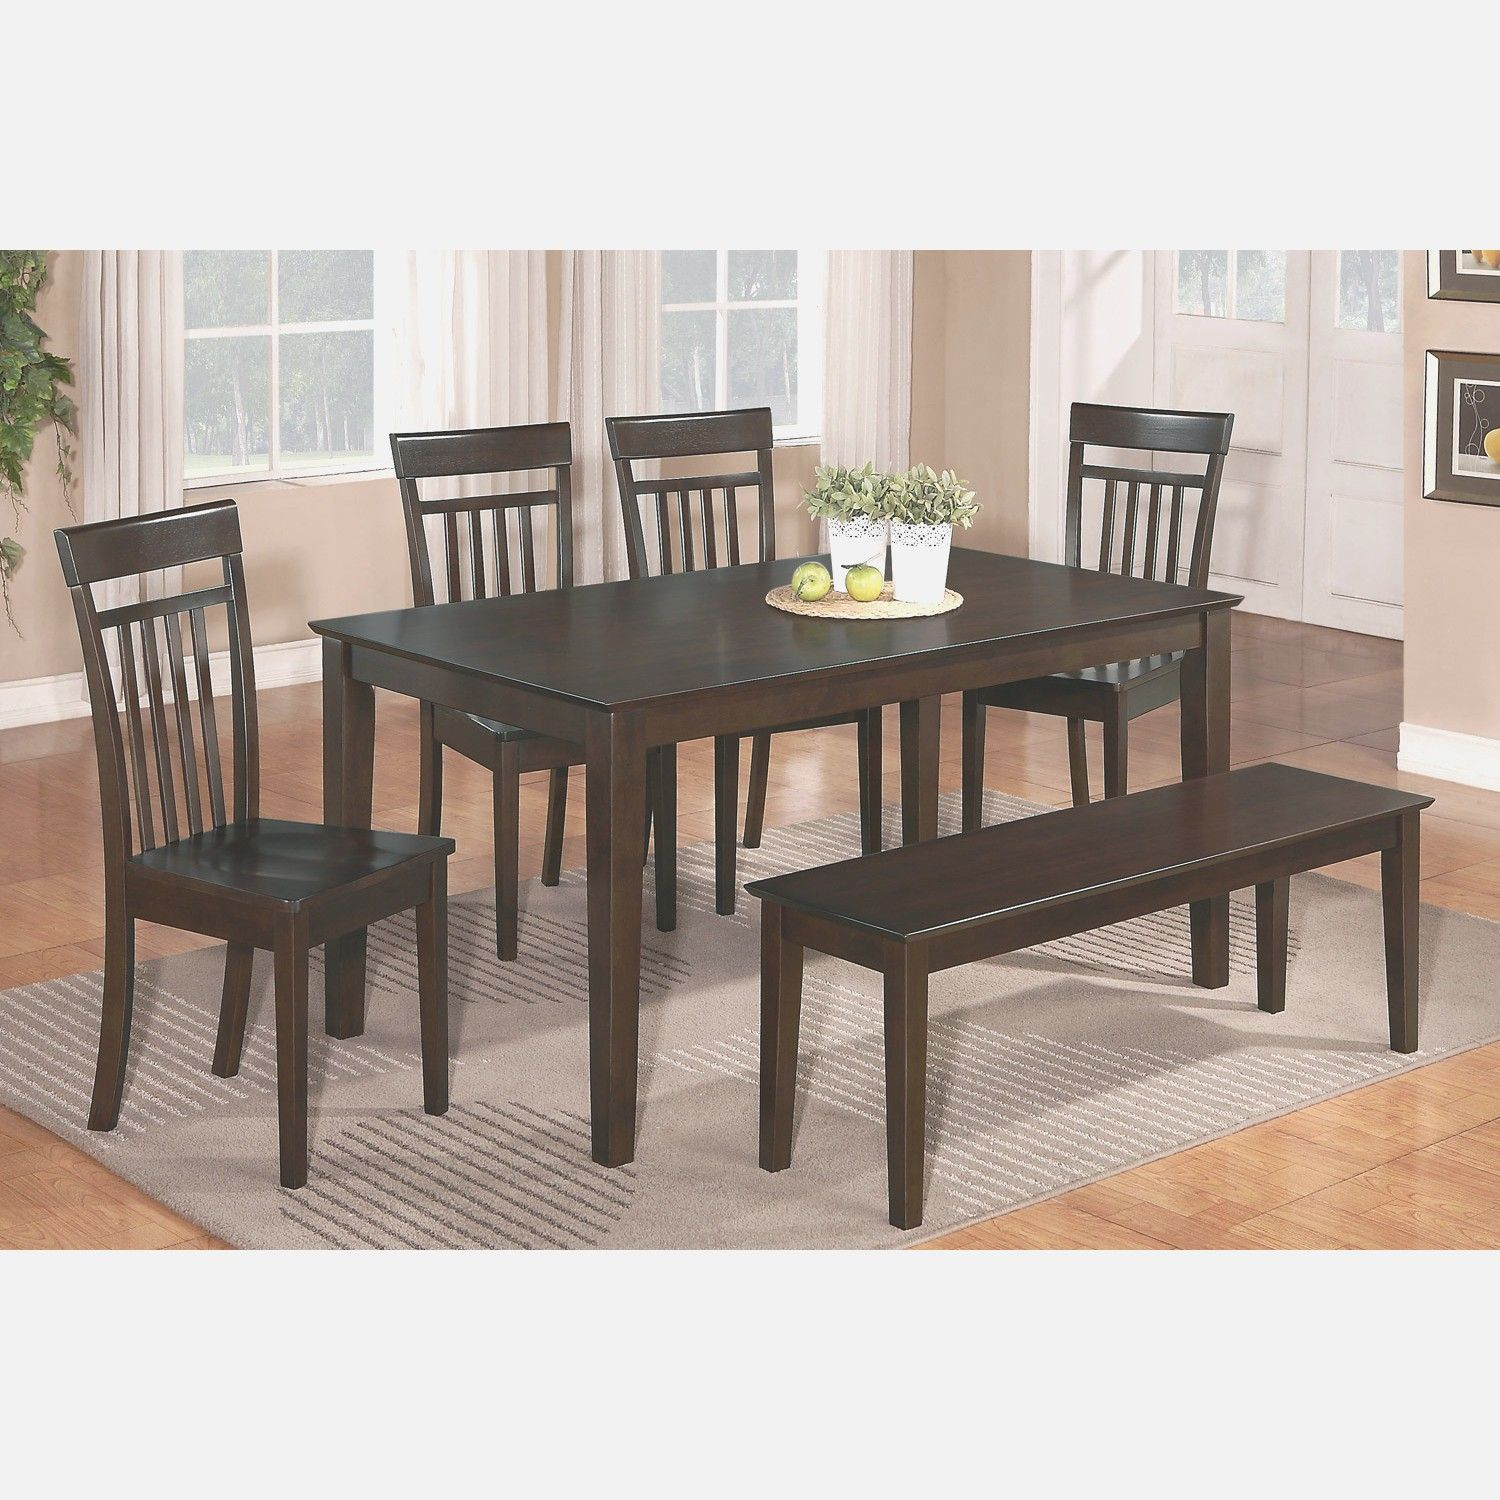 rectangular cafe extension hayneedle wood solid cfm sets product kitchen yosemite modus master piece table